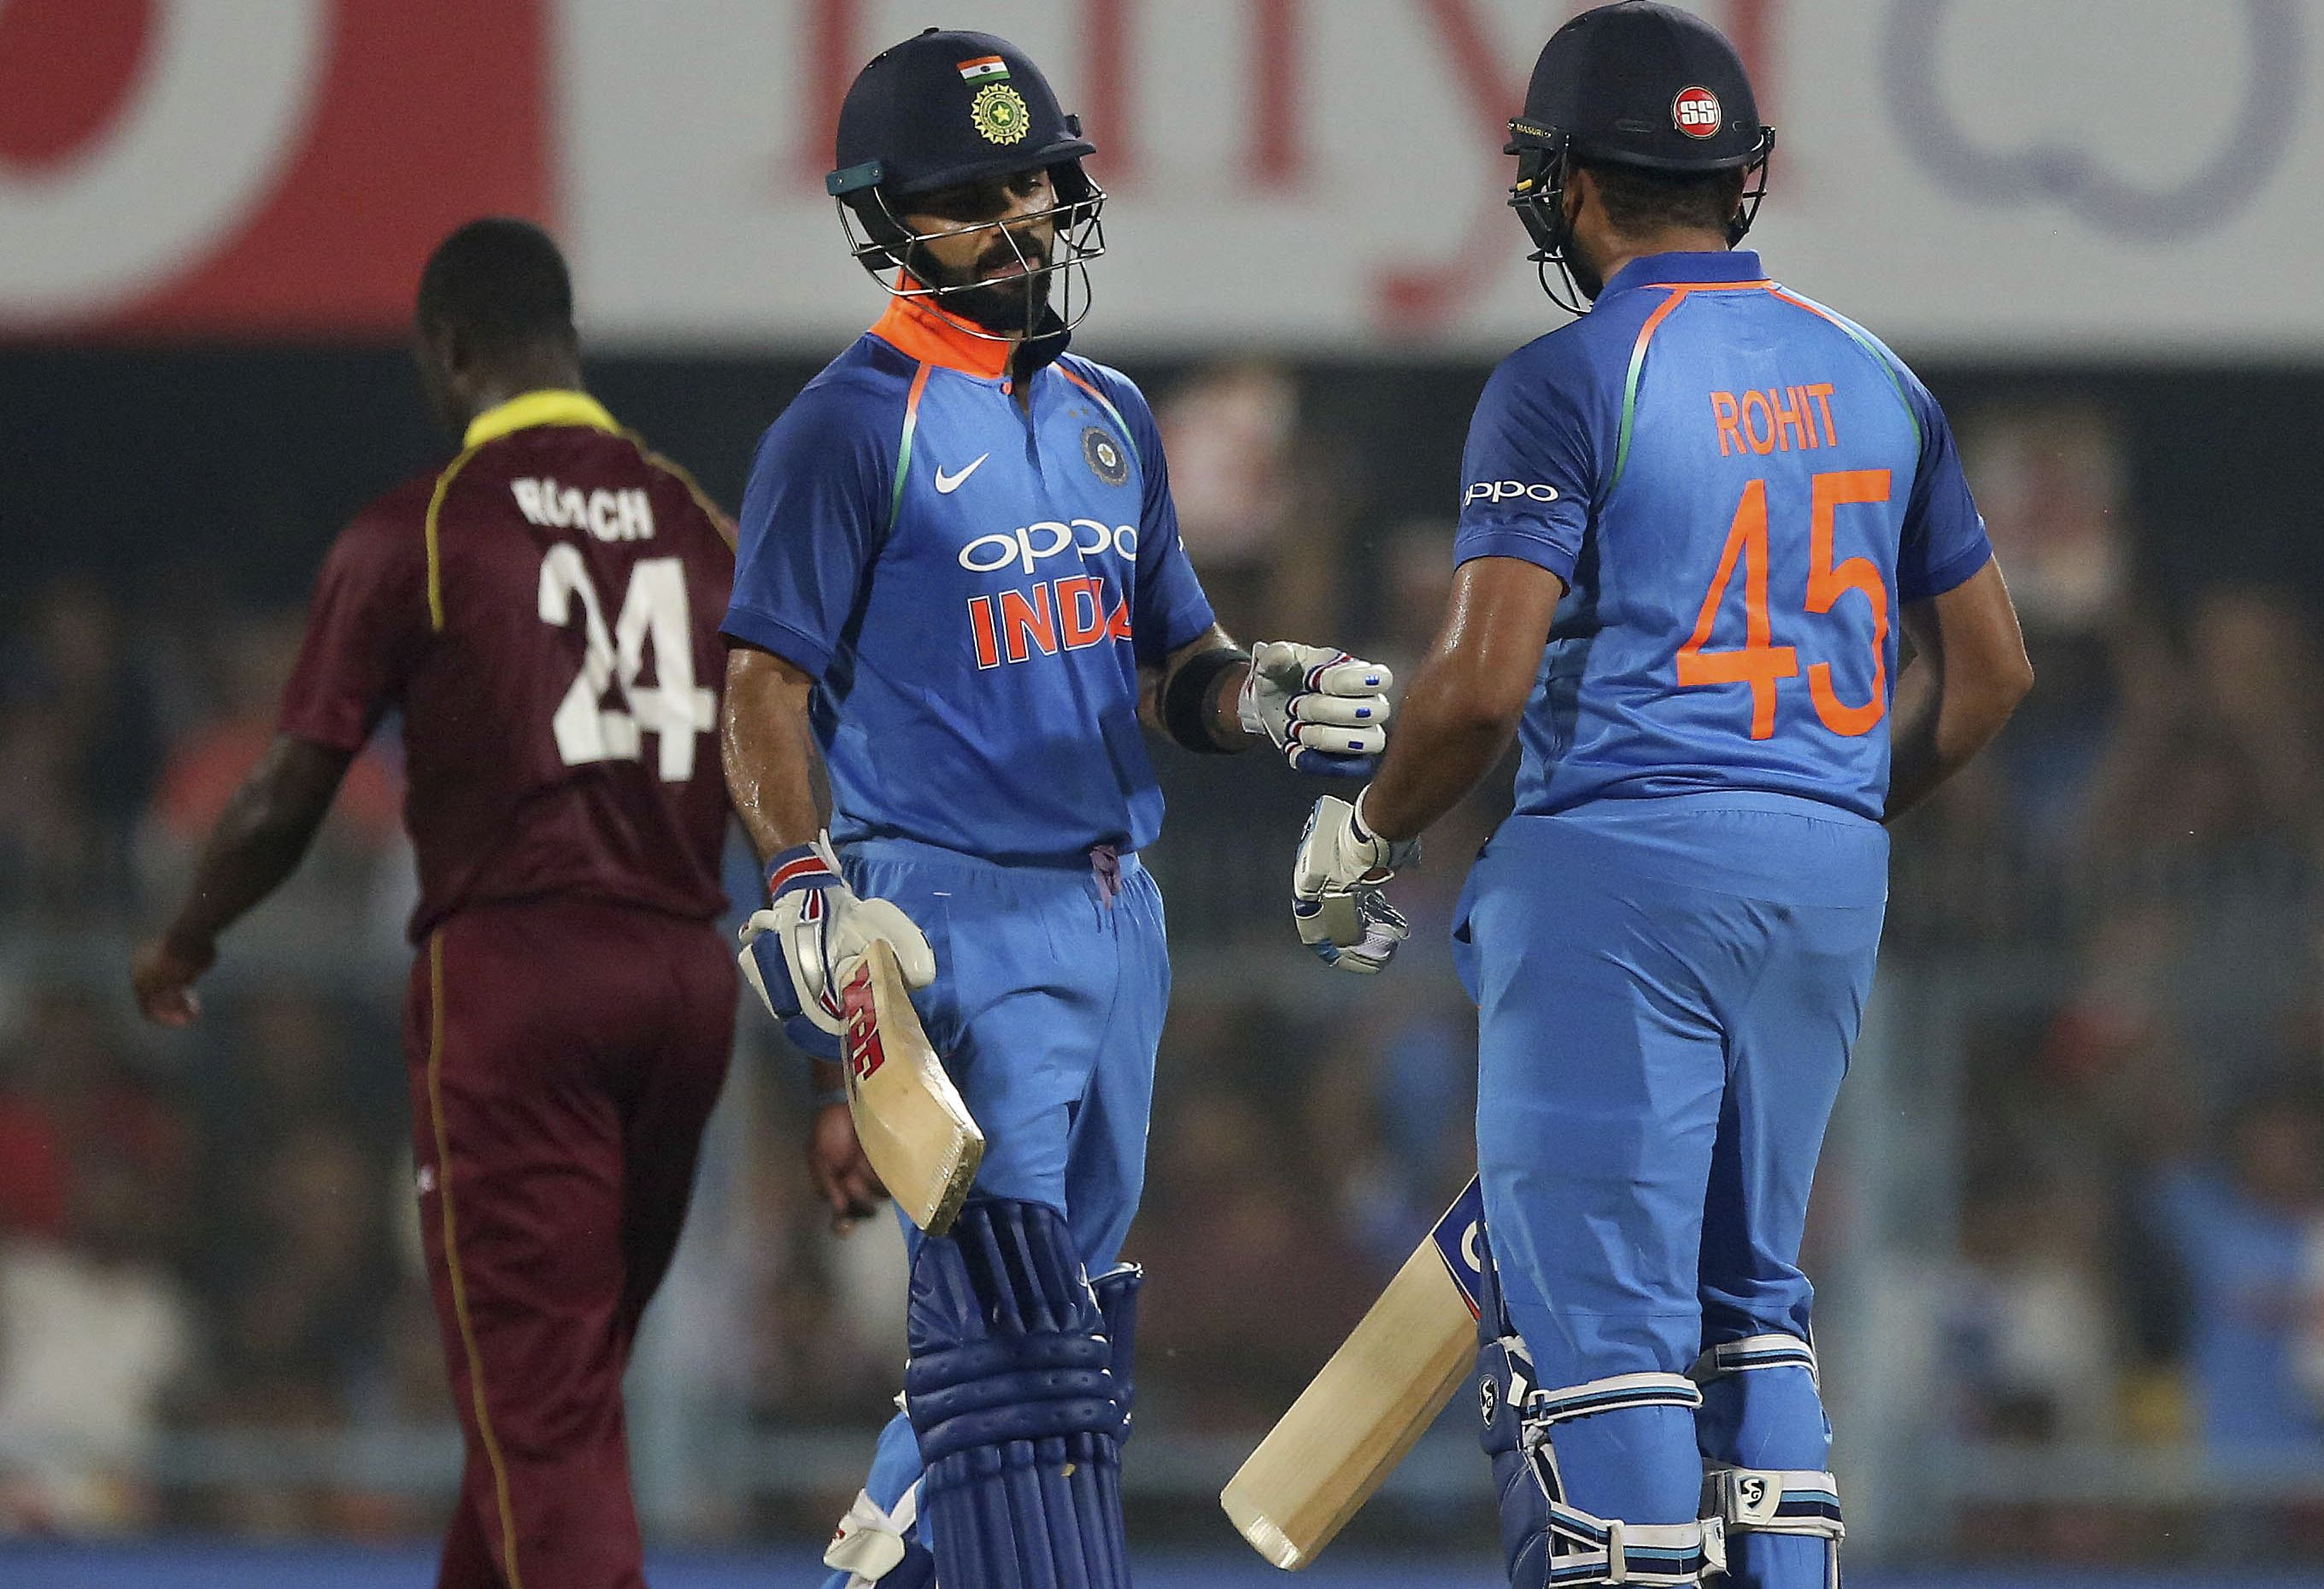 India vs West Indies 2018, First ODI Twitter Reacts As